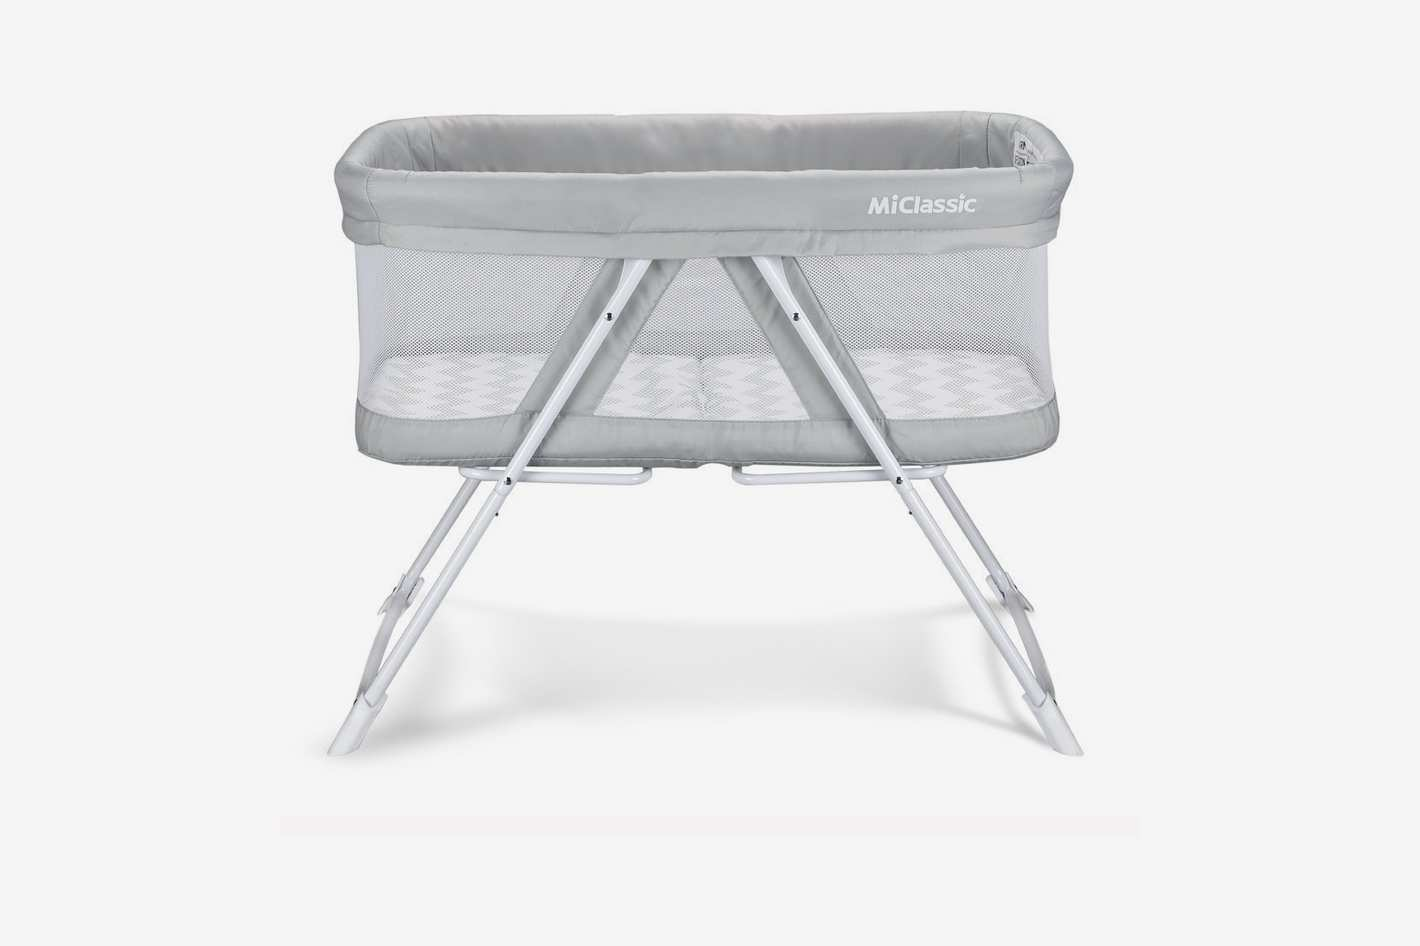 2 in 1 Rock & Stay Bassinet One-Second Fold Travel Crib Portable